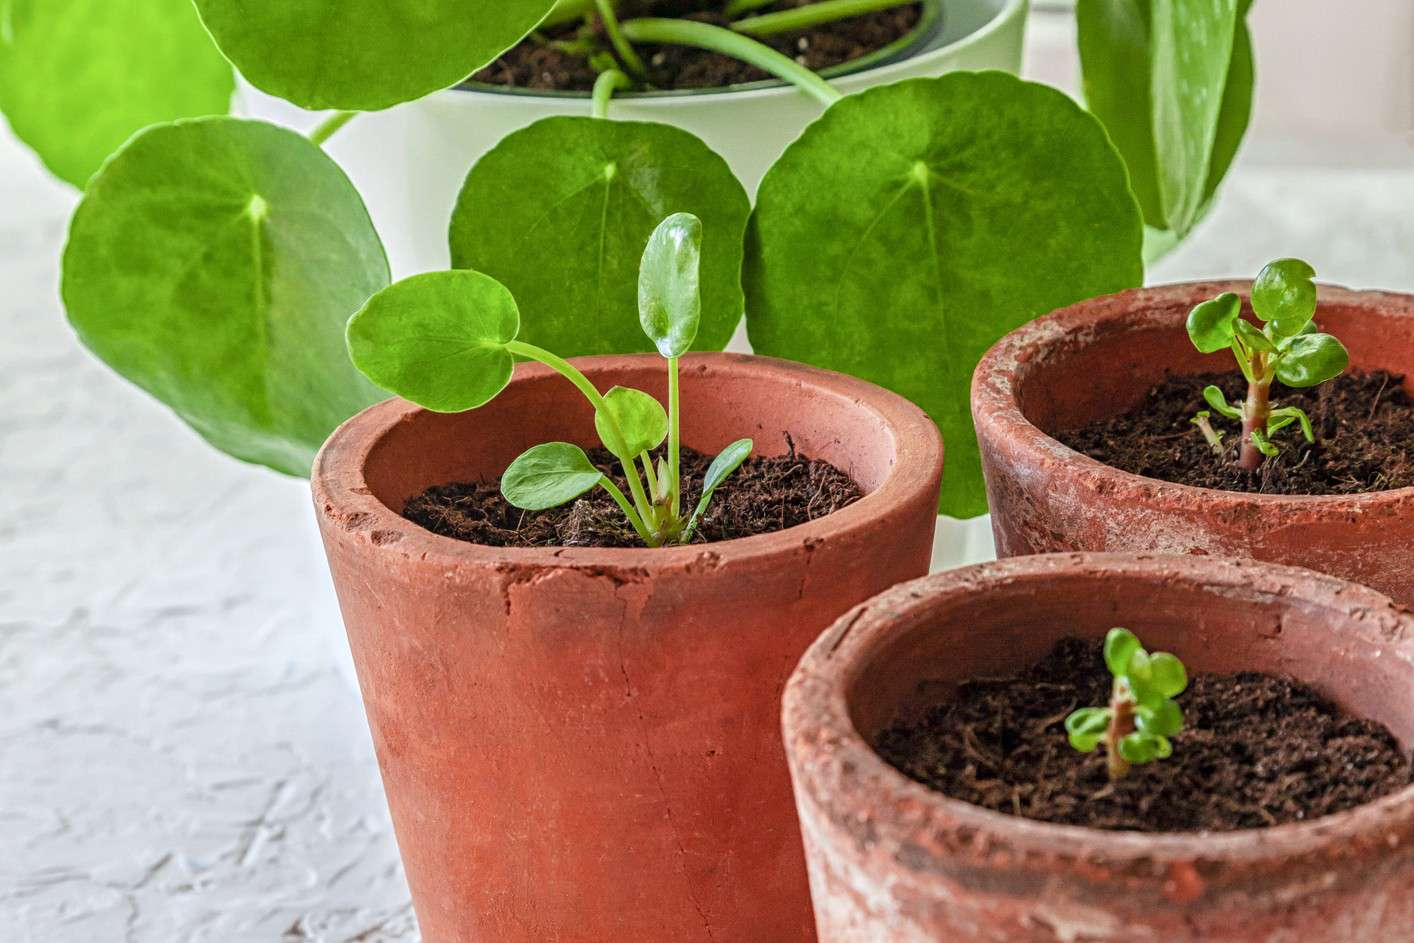 Pilea peperomioides (Chinese money plant) offshoots in terracotta pots with the mother plant behind them.